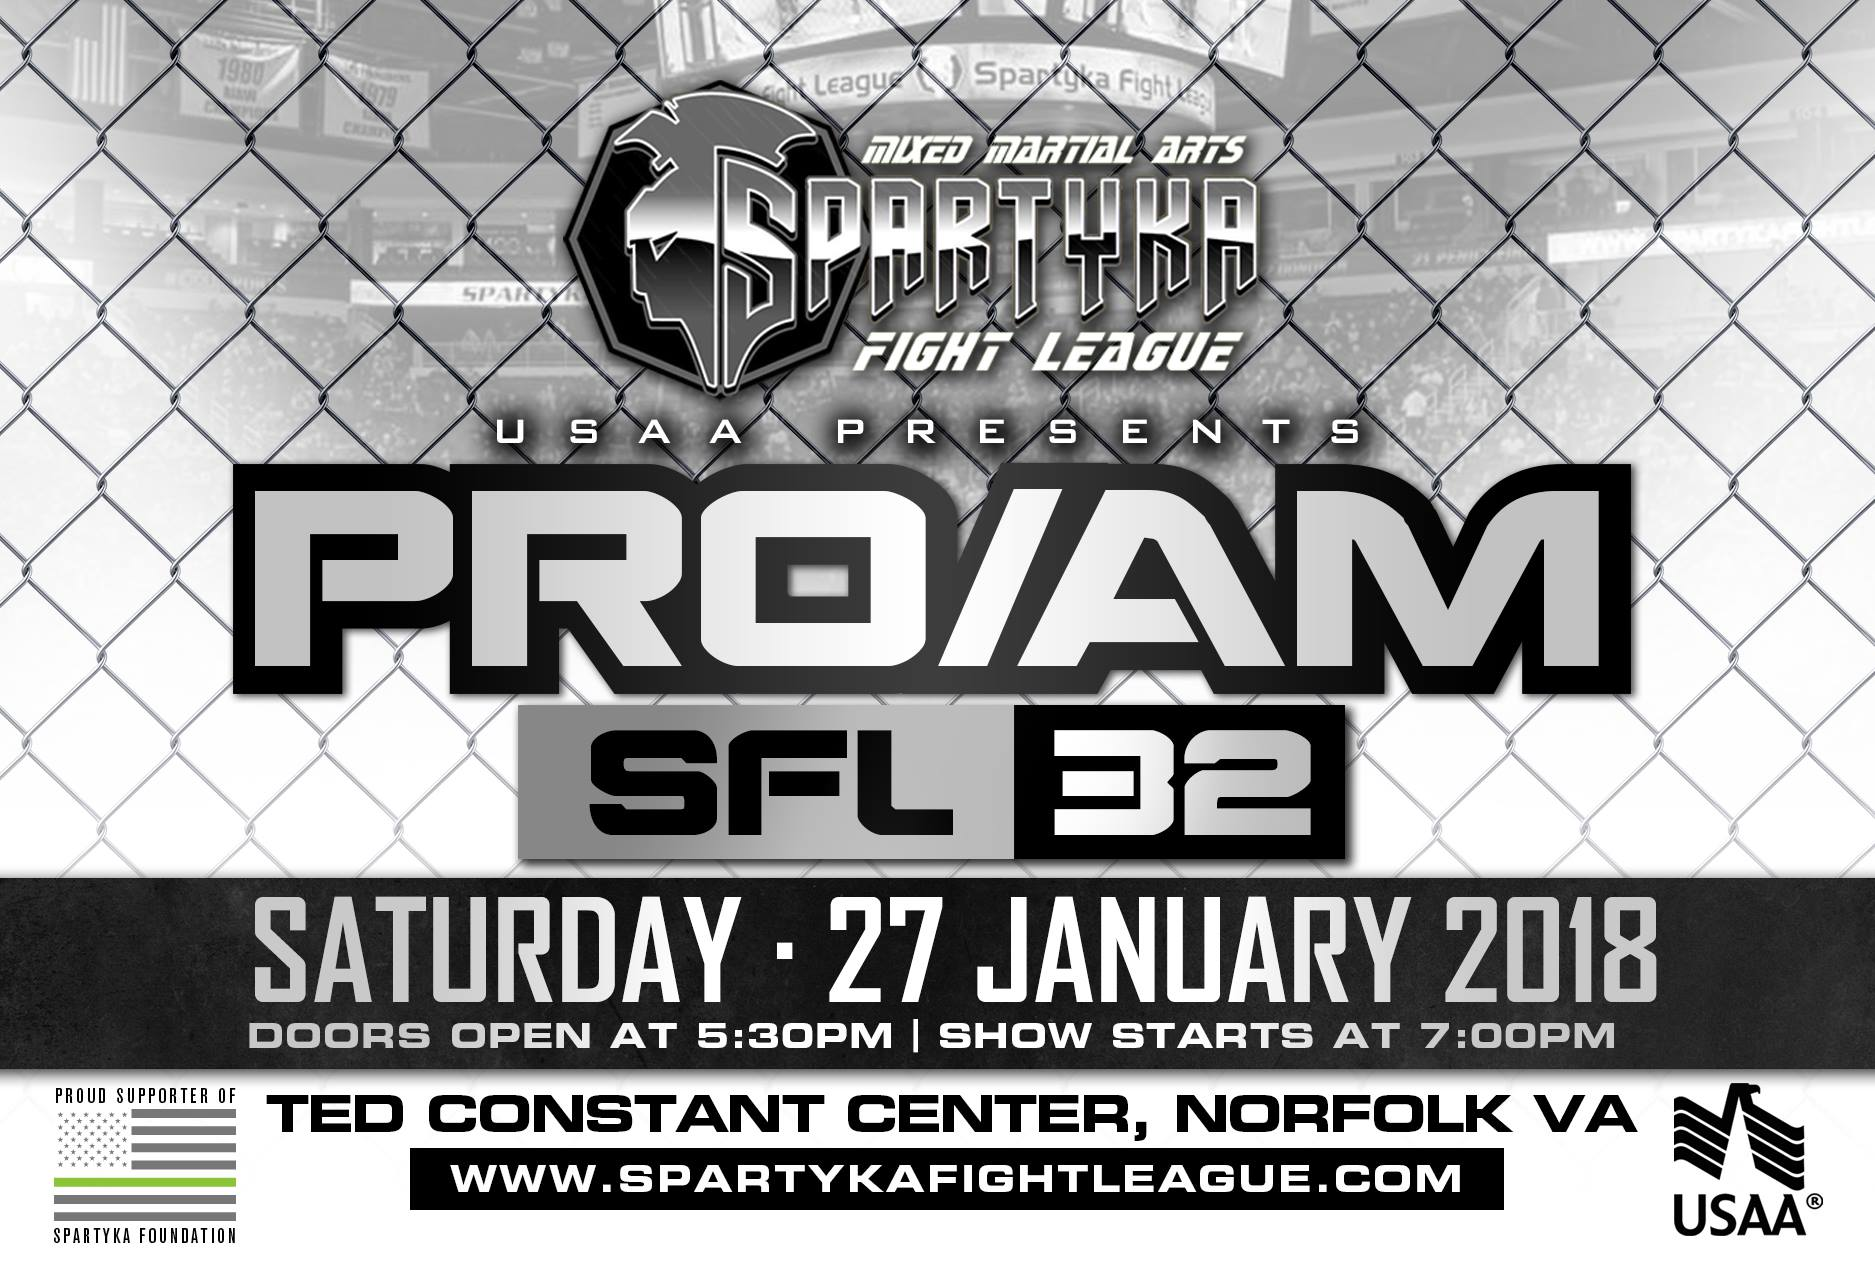 spartyka fight league 32